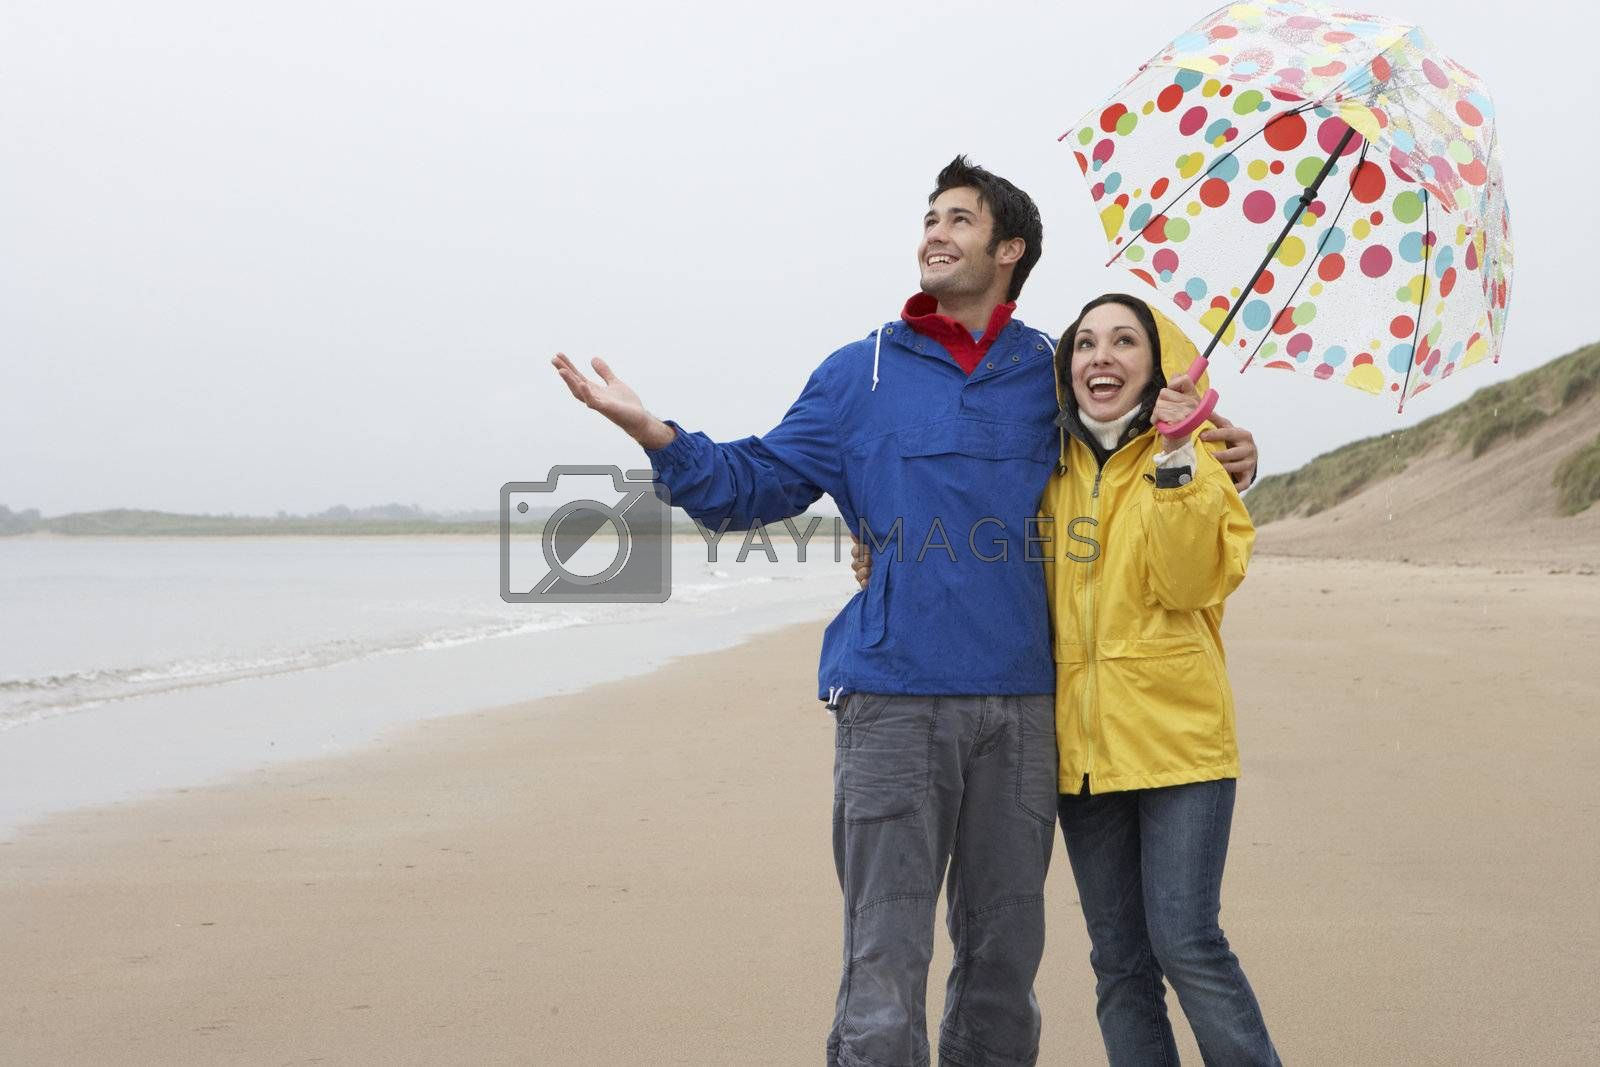 Royalty free image of Happy couple on beach by omg_images